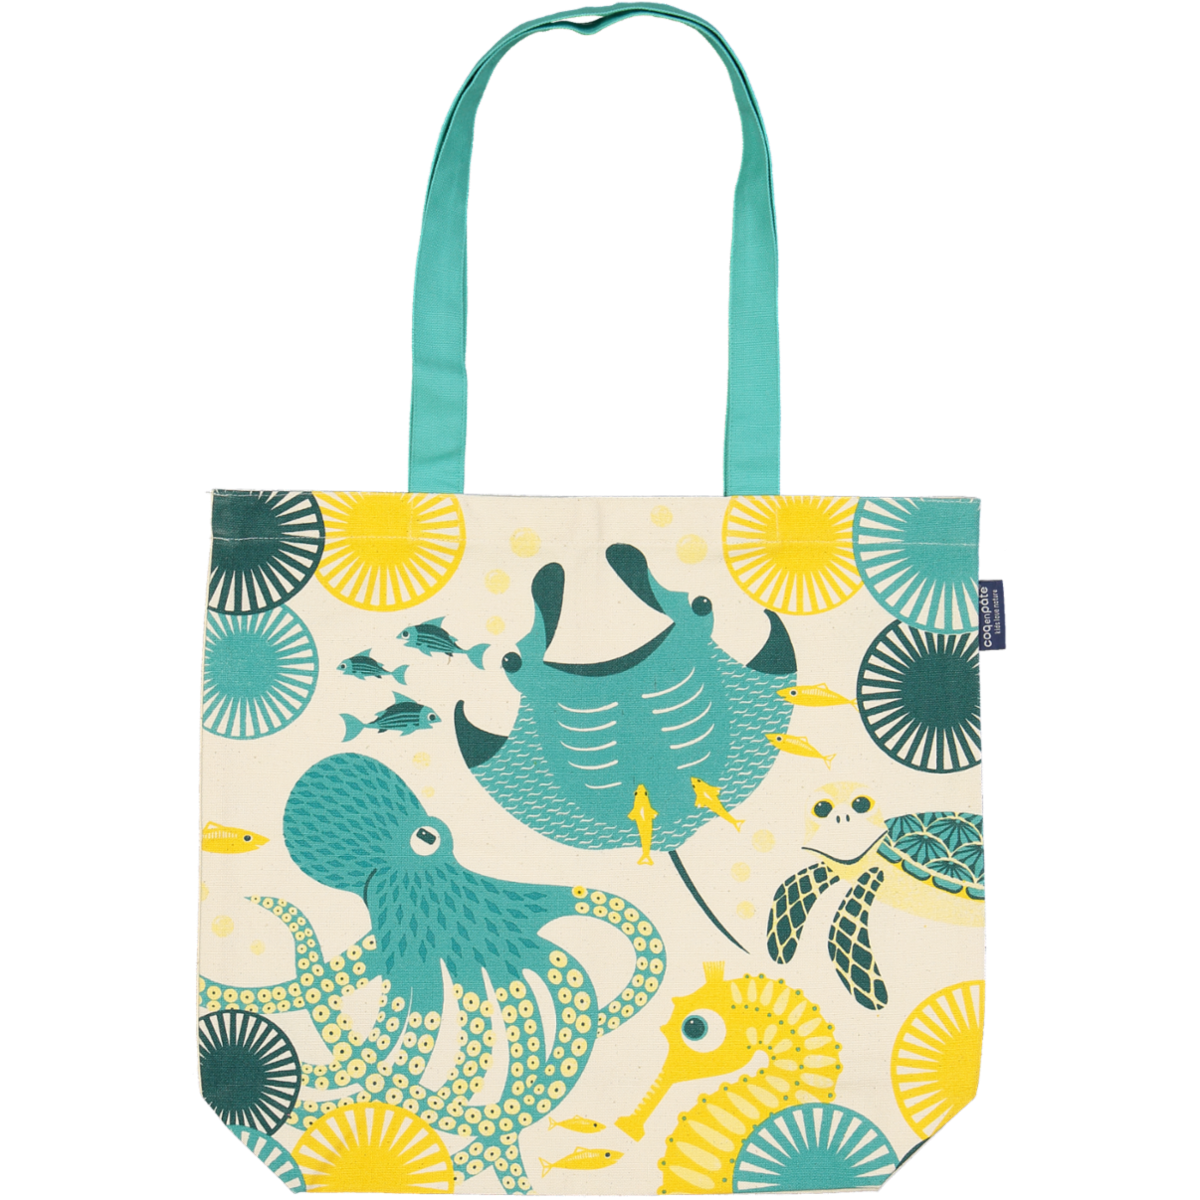 Ocean shopping bag